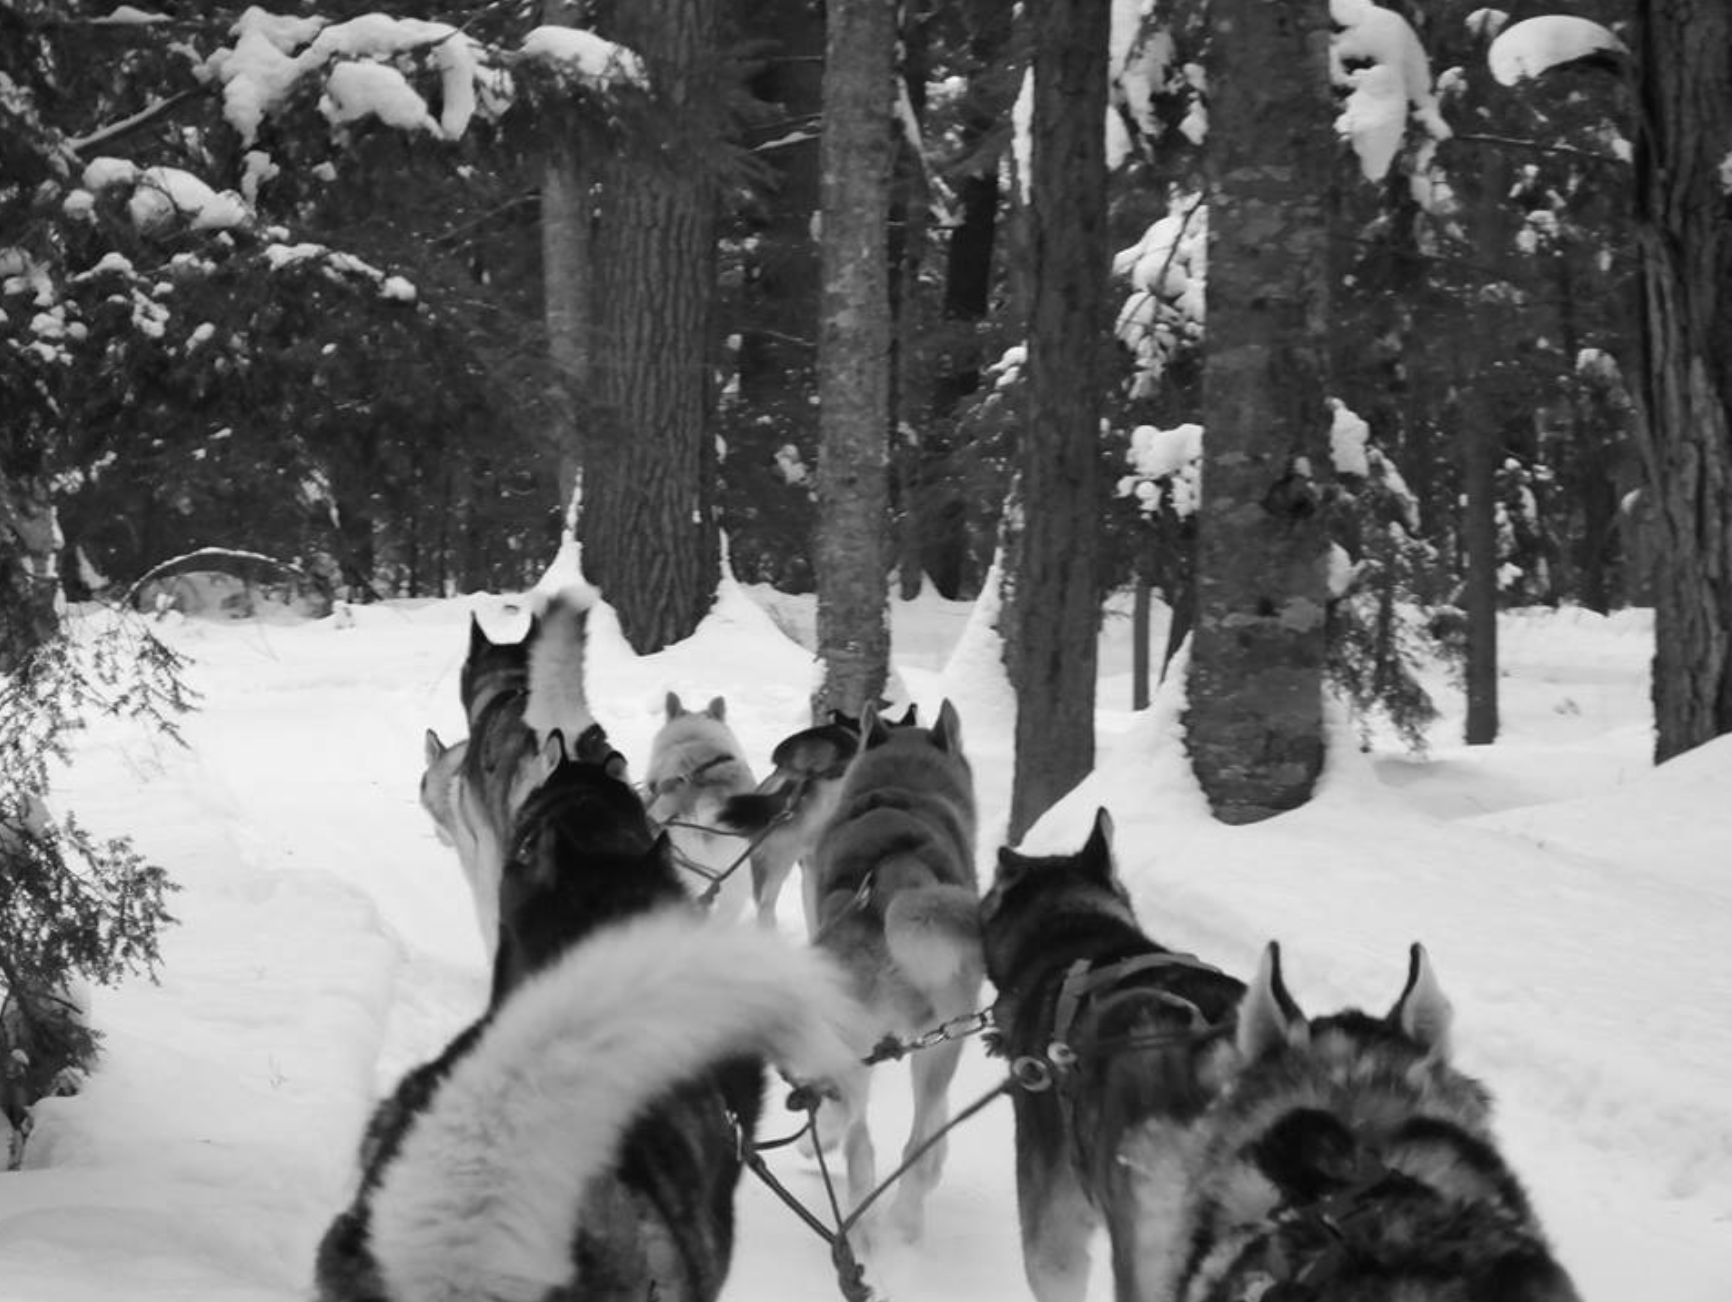 Dog-sledding through a forest in Quebec's Outaouais